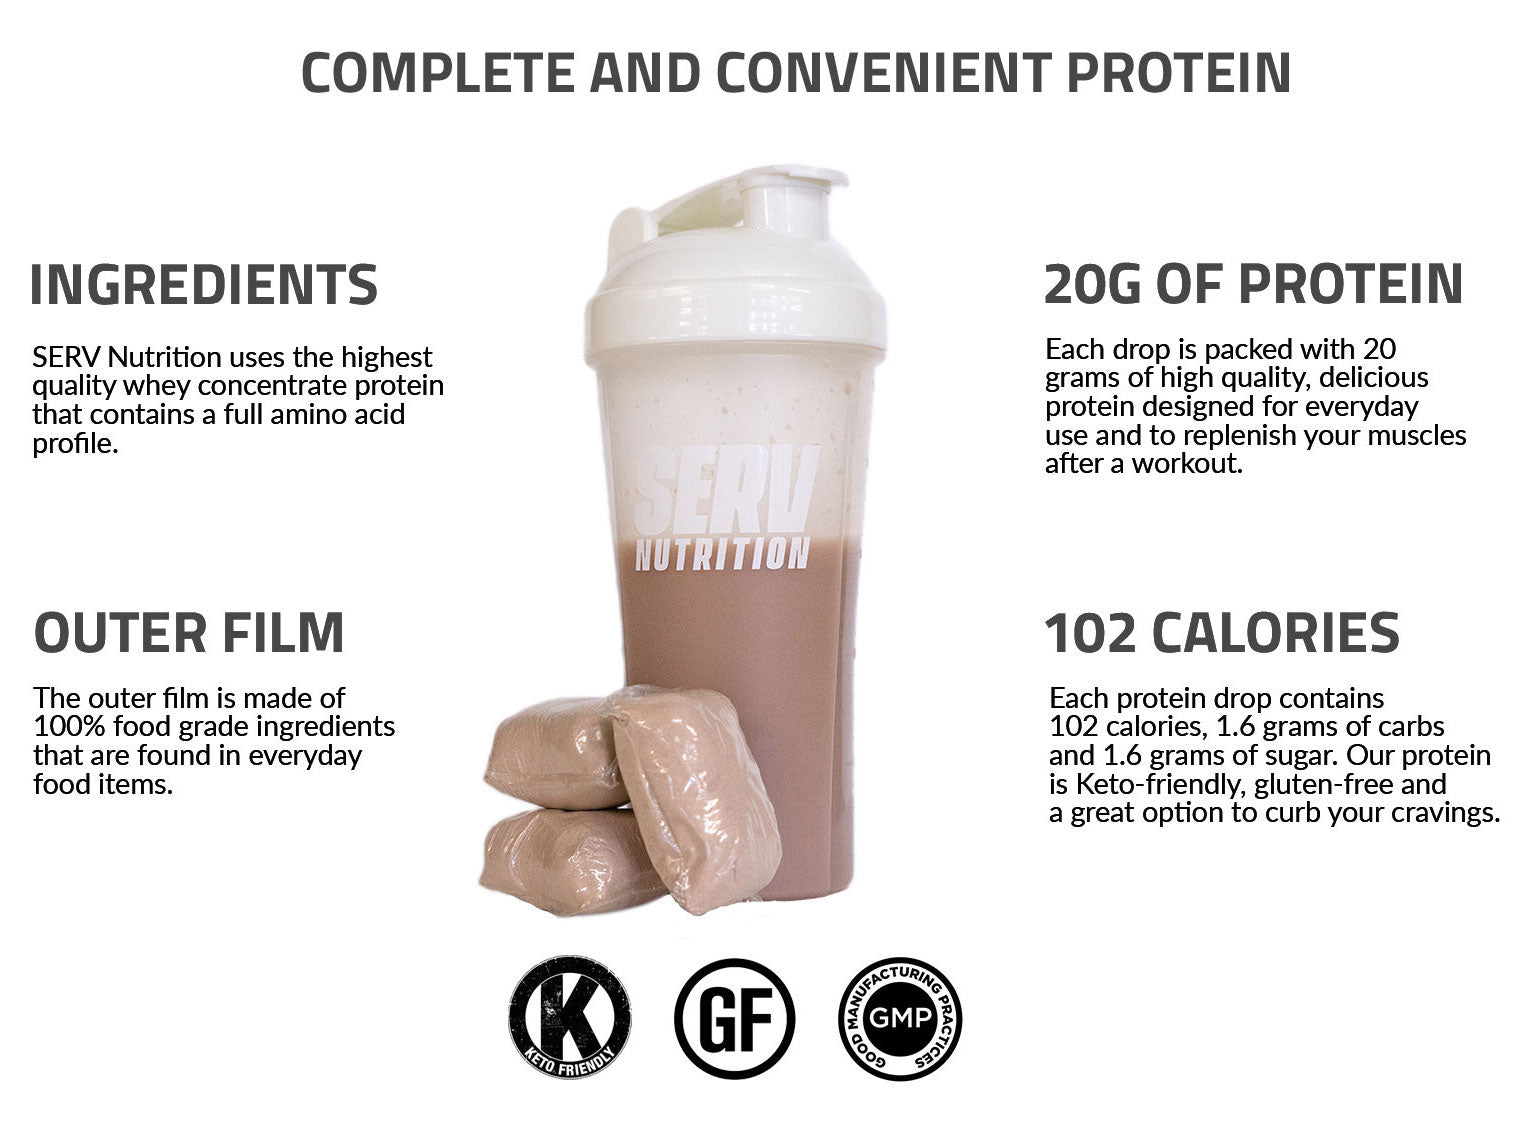 NUTRITION FACTS – SERV Nutrition